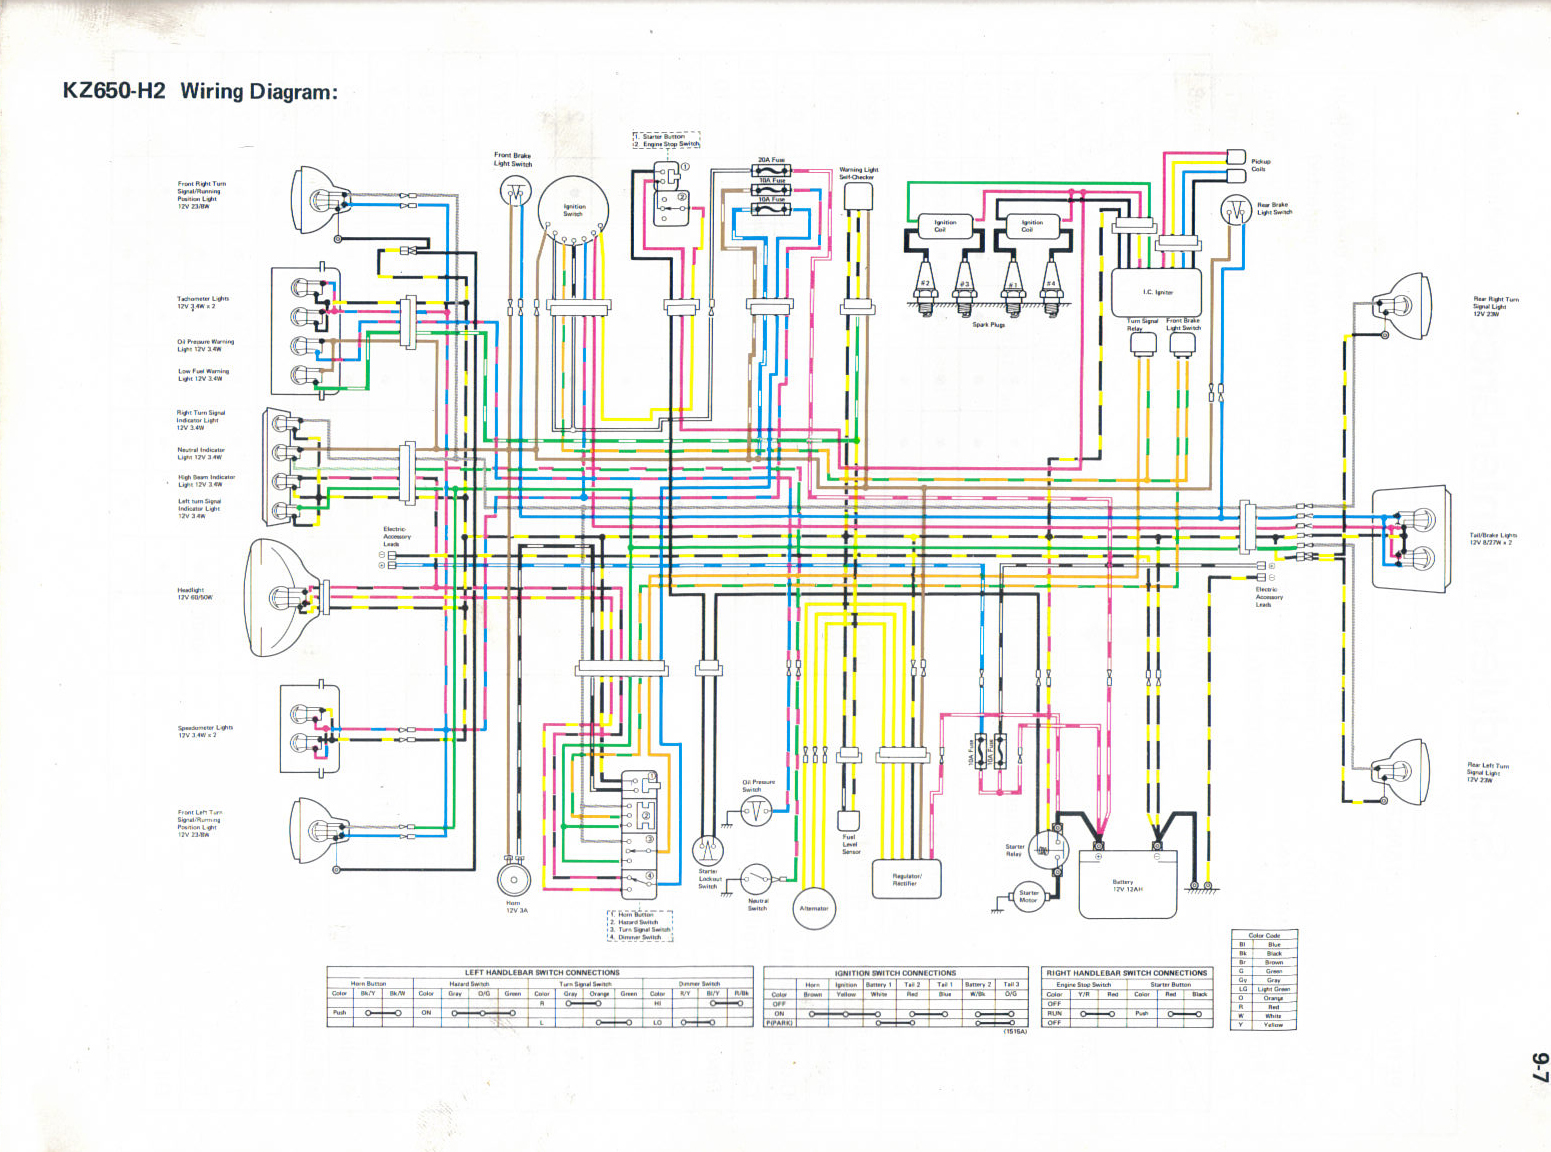 Free Kawasaki Wiring Diagrams Library R1 Diagram Picture Schematic Kz650 Info Mojave